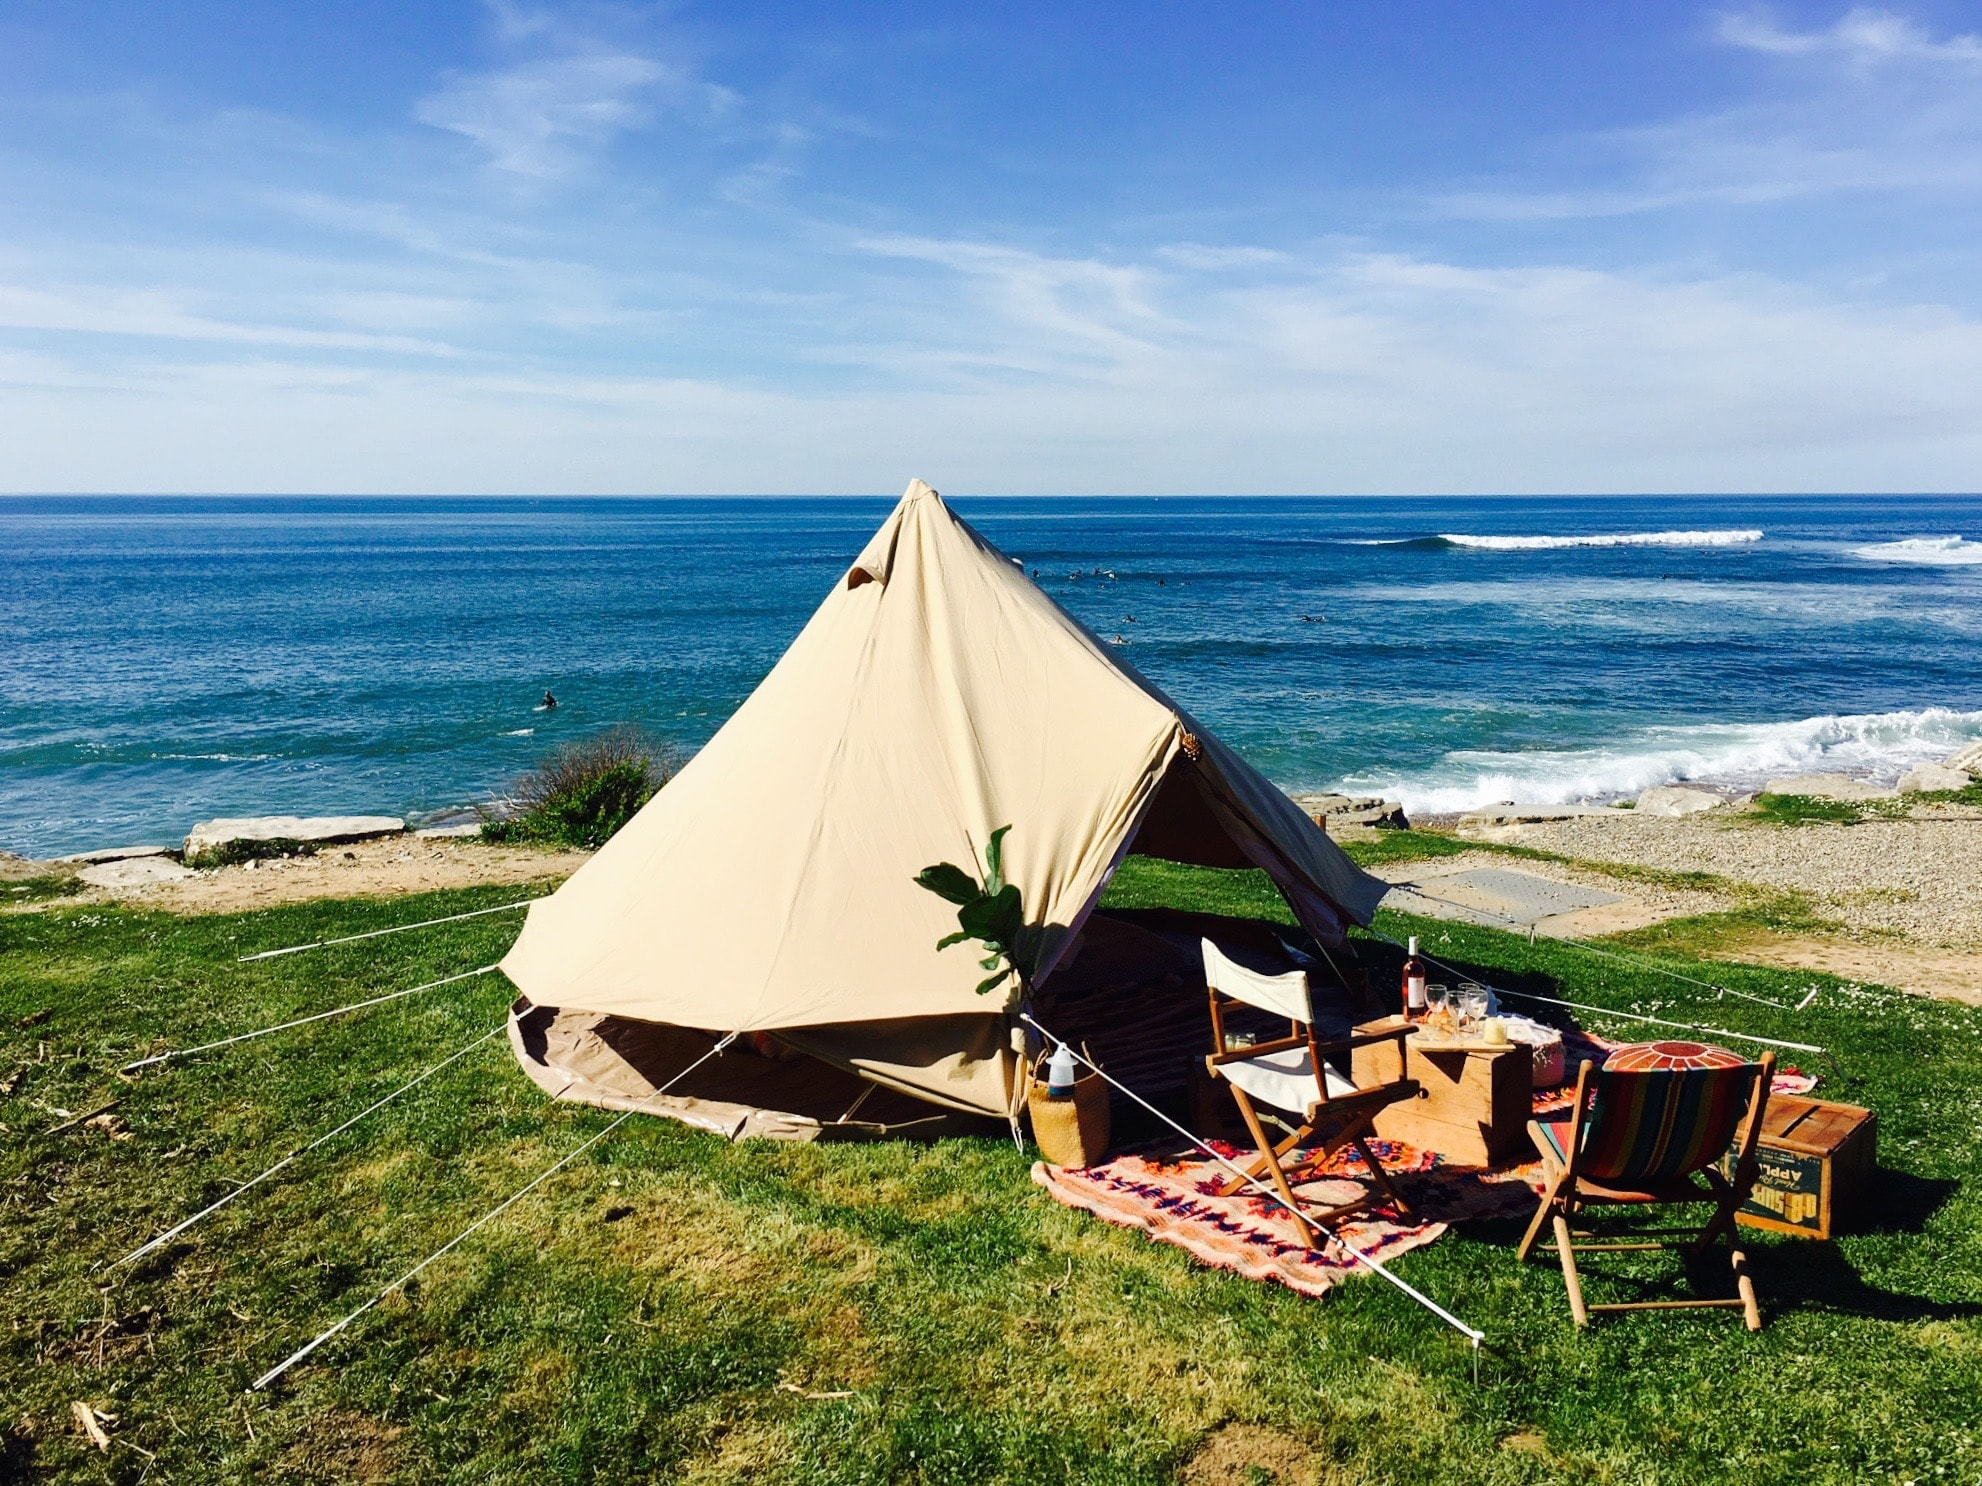 SNAZZY-CAMP-BIARRITZ-ACCOMMODATION-BASQUE-COUNTRY-CAMPING-GLAMPING-FRANCE-HOLIDAYS (16).jpg